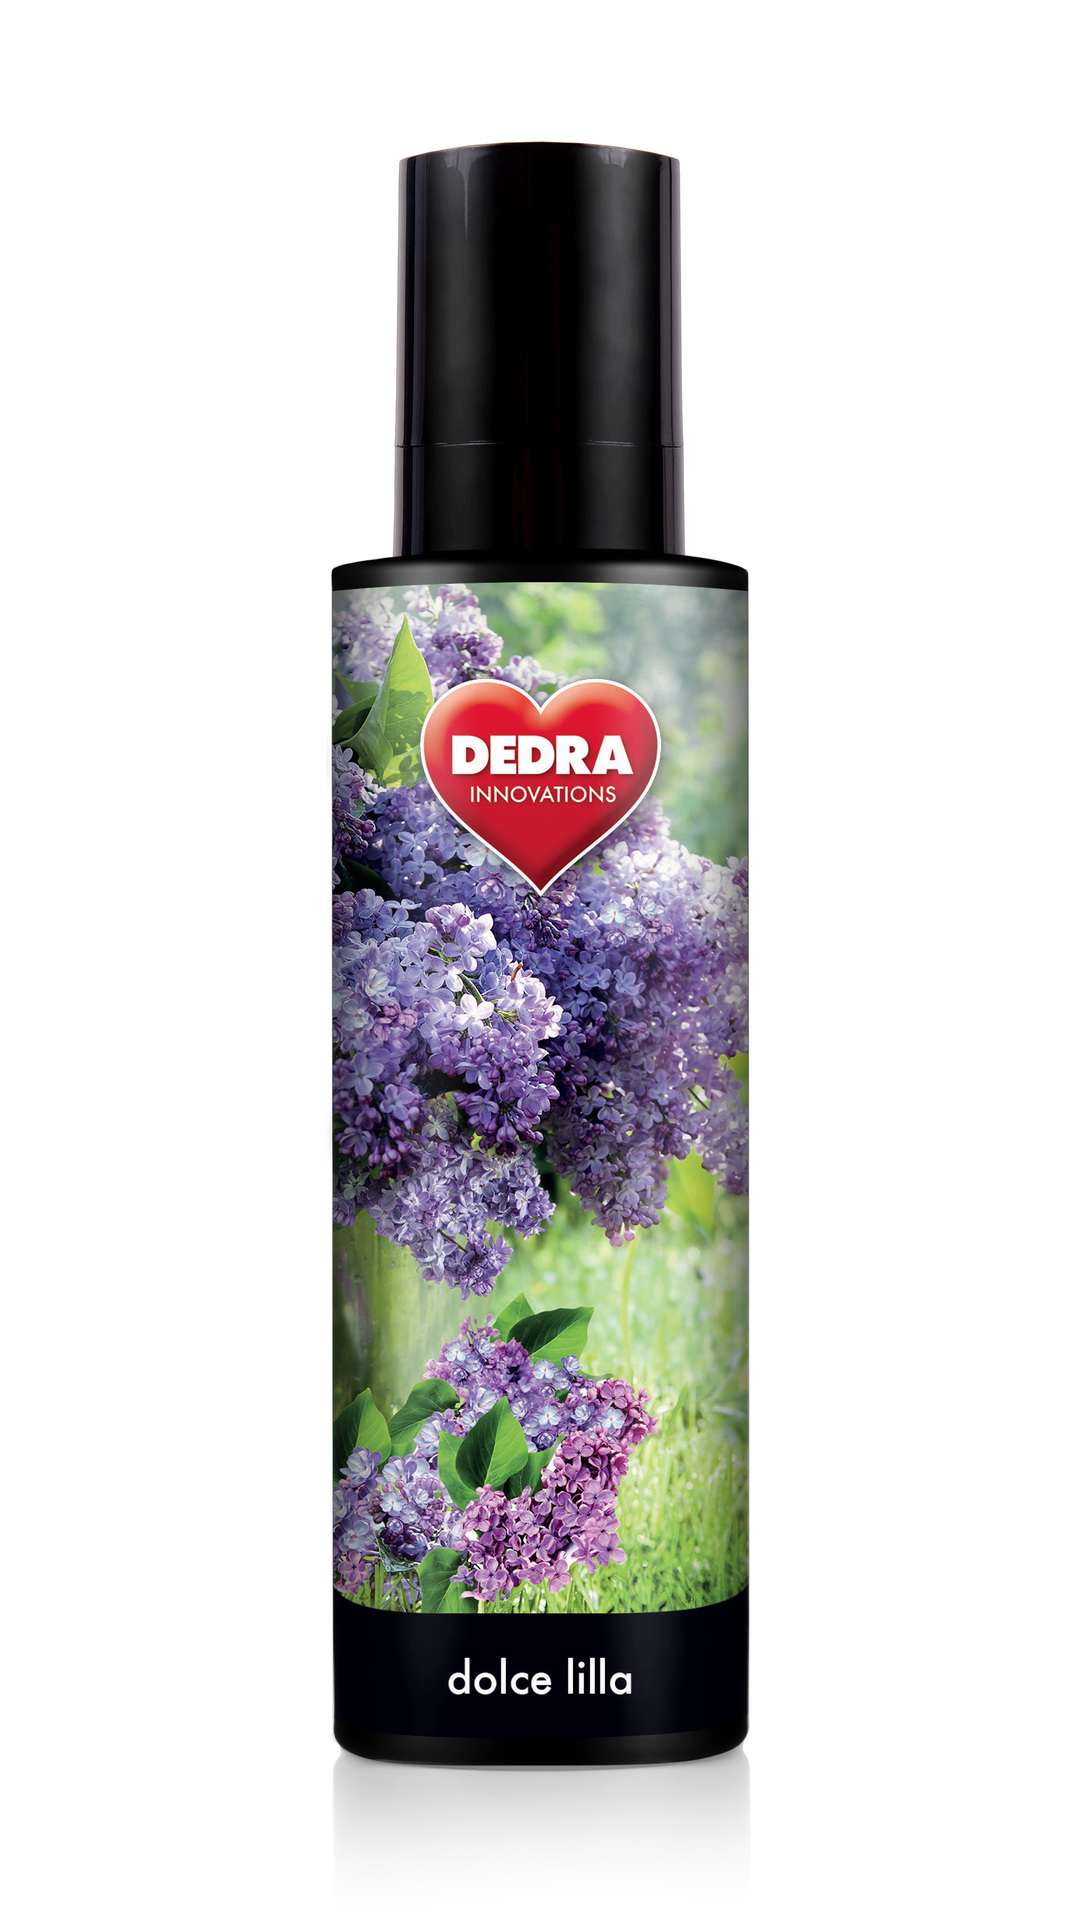 https://dedra.blob.core.windows.net/cms/ContentItems/24400_parfum-airatextiles-dolce-lilla-osvezovac-vzduchu-a-textilii/images/hp0437-dolce-lilla-cerna.jpg